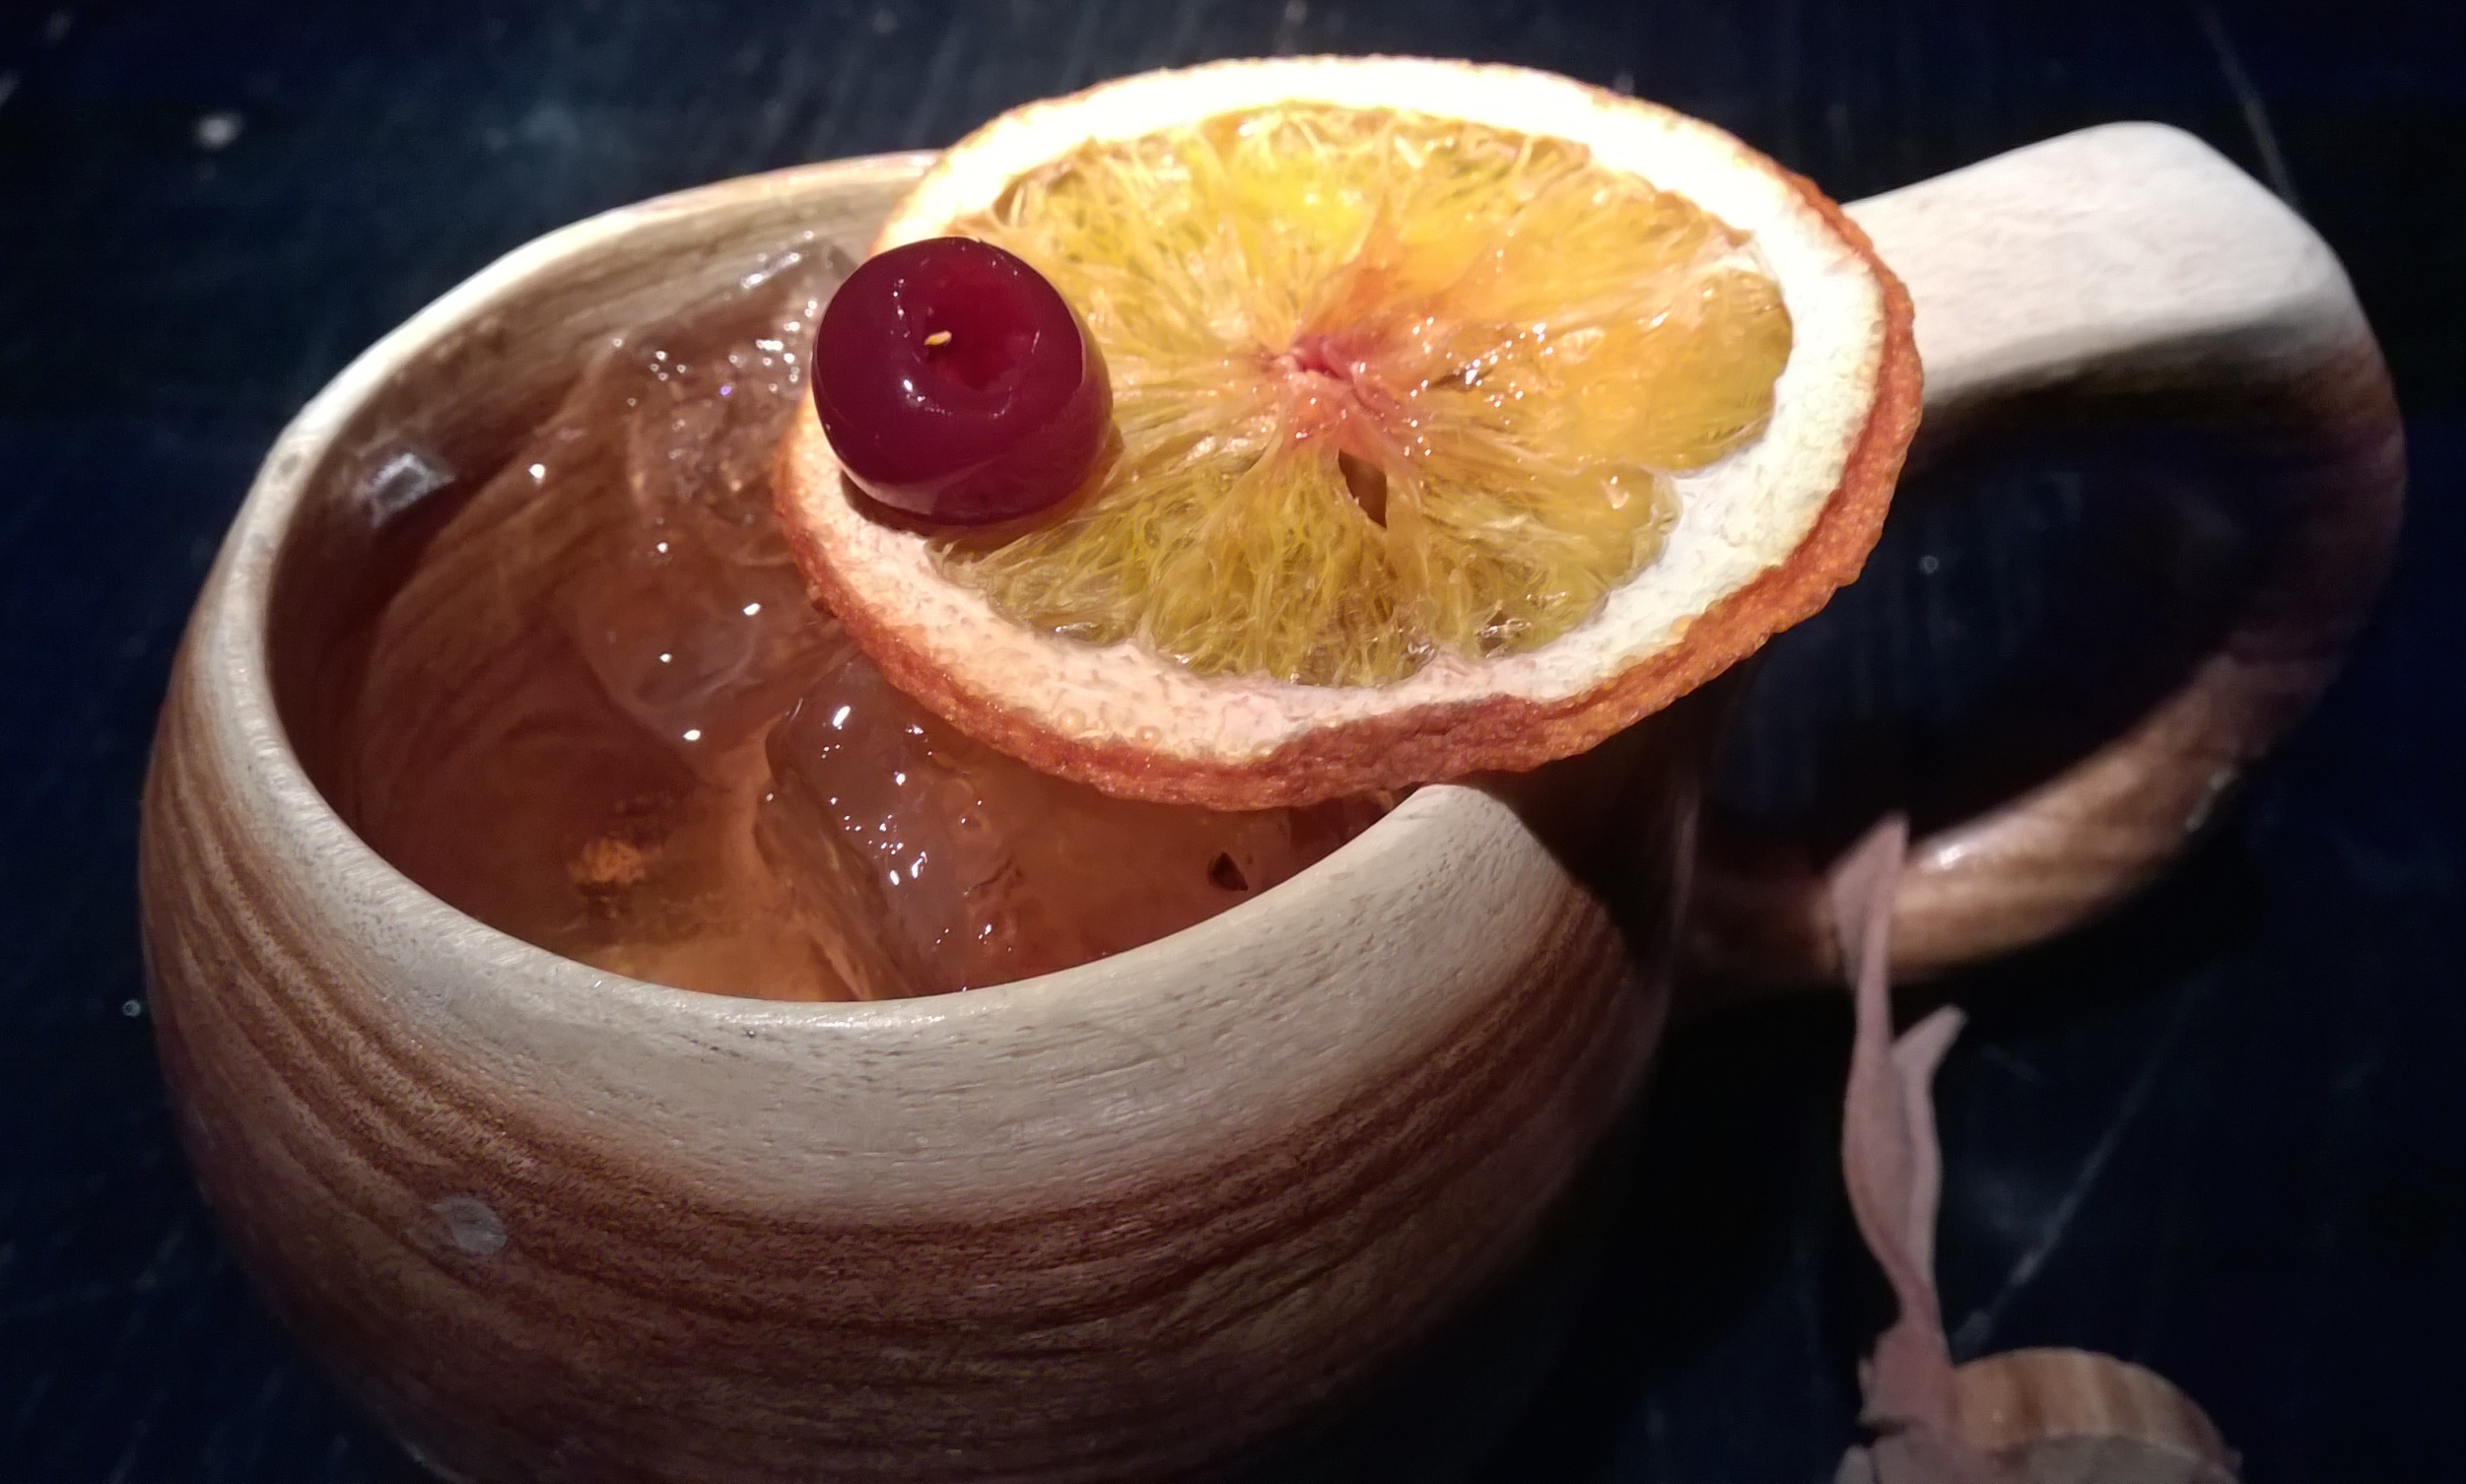 Our 'Ancient Fashioned' cocktail